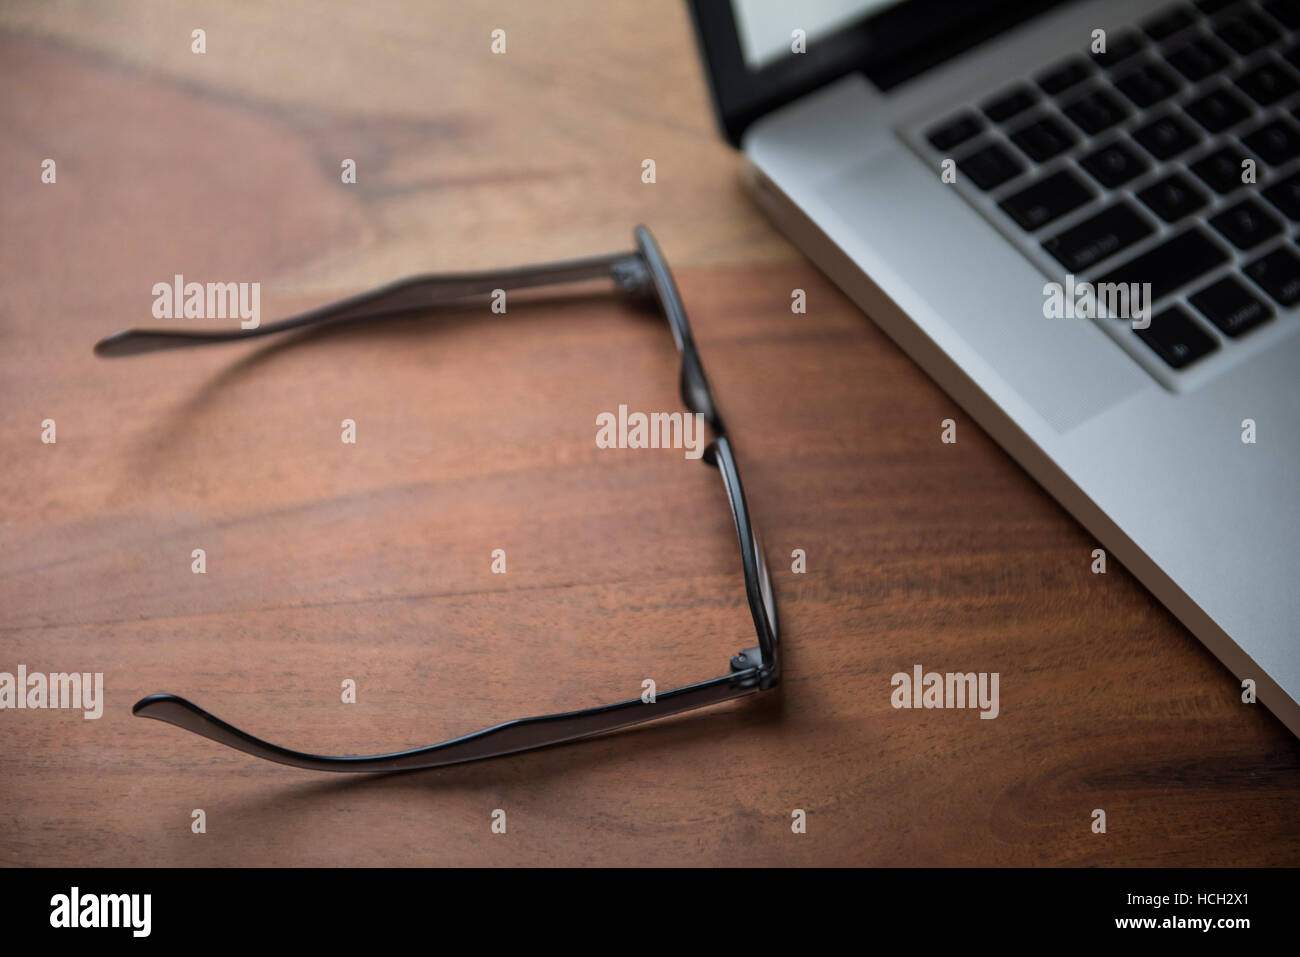 Laptop and spectacle on table - Stock Image